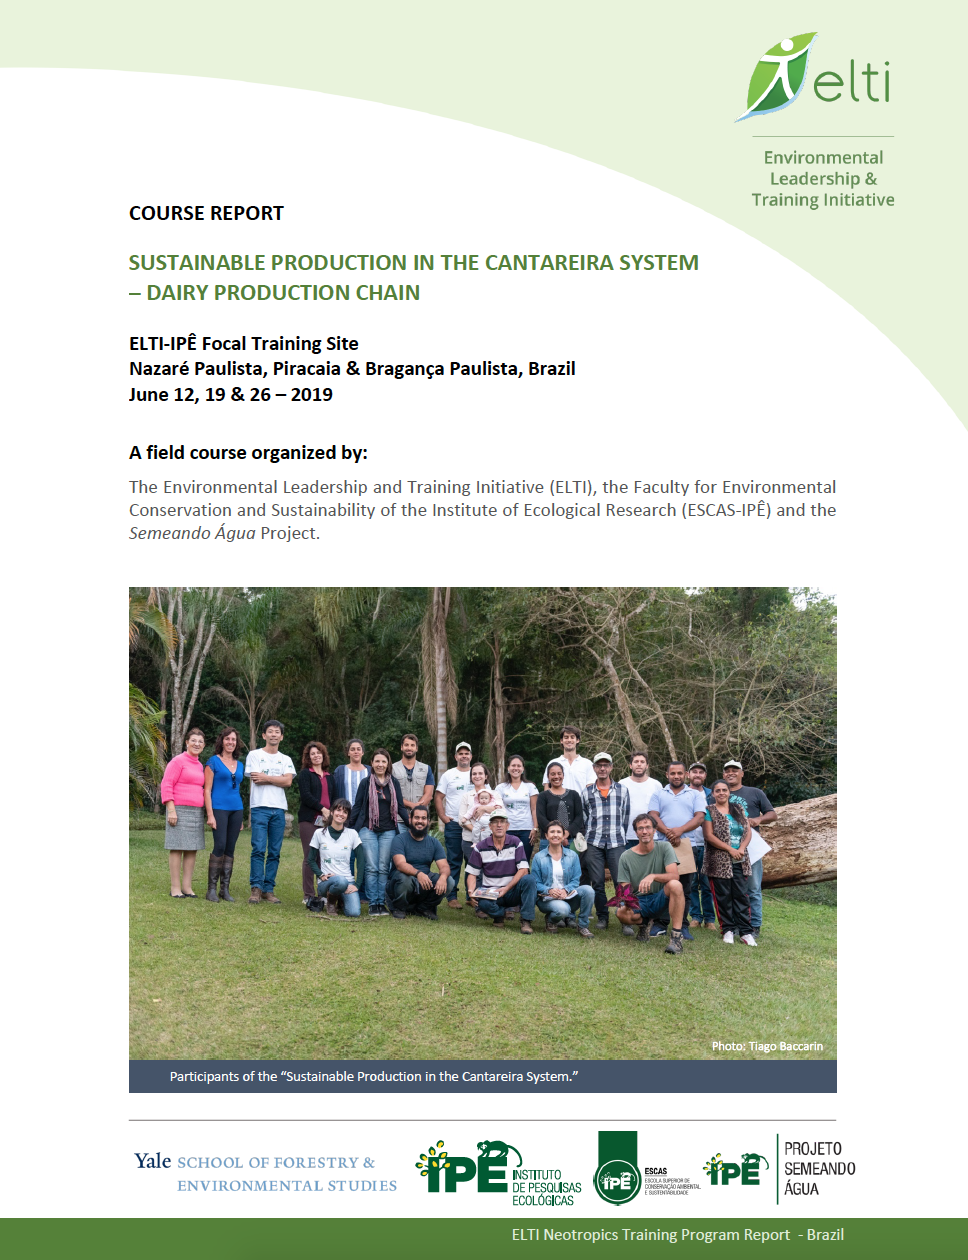 Cover page for the course report